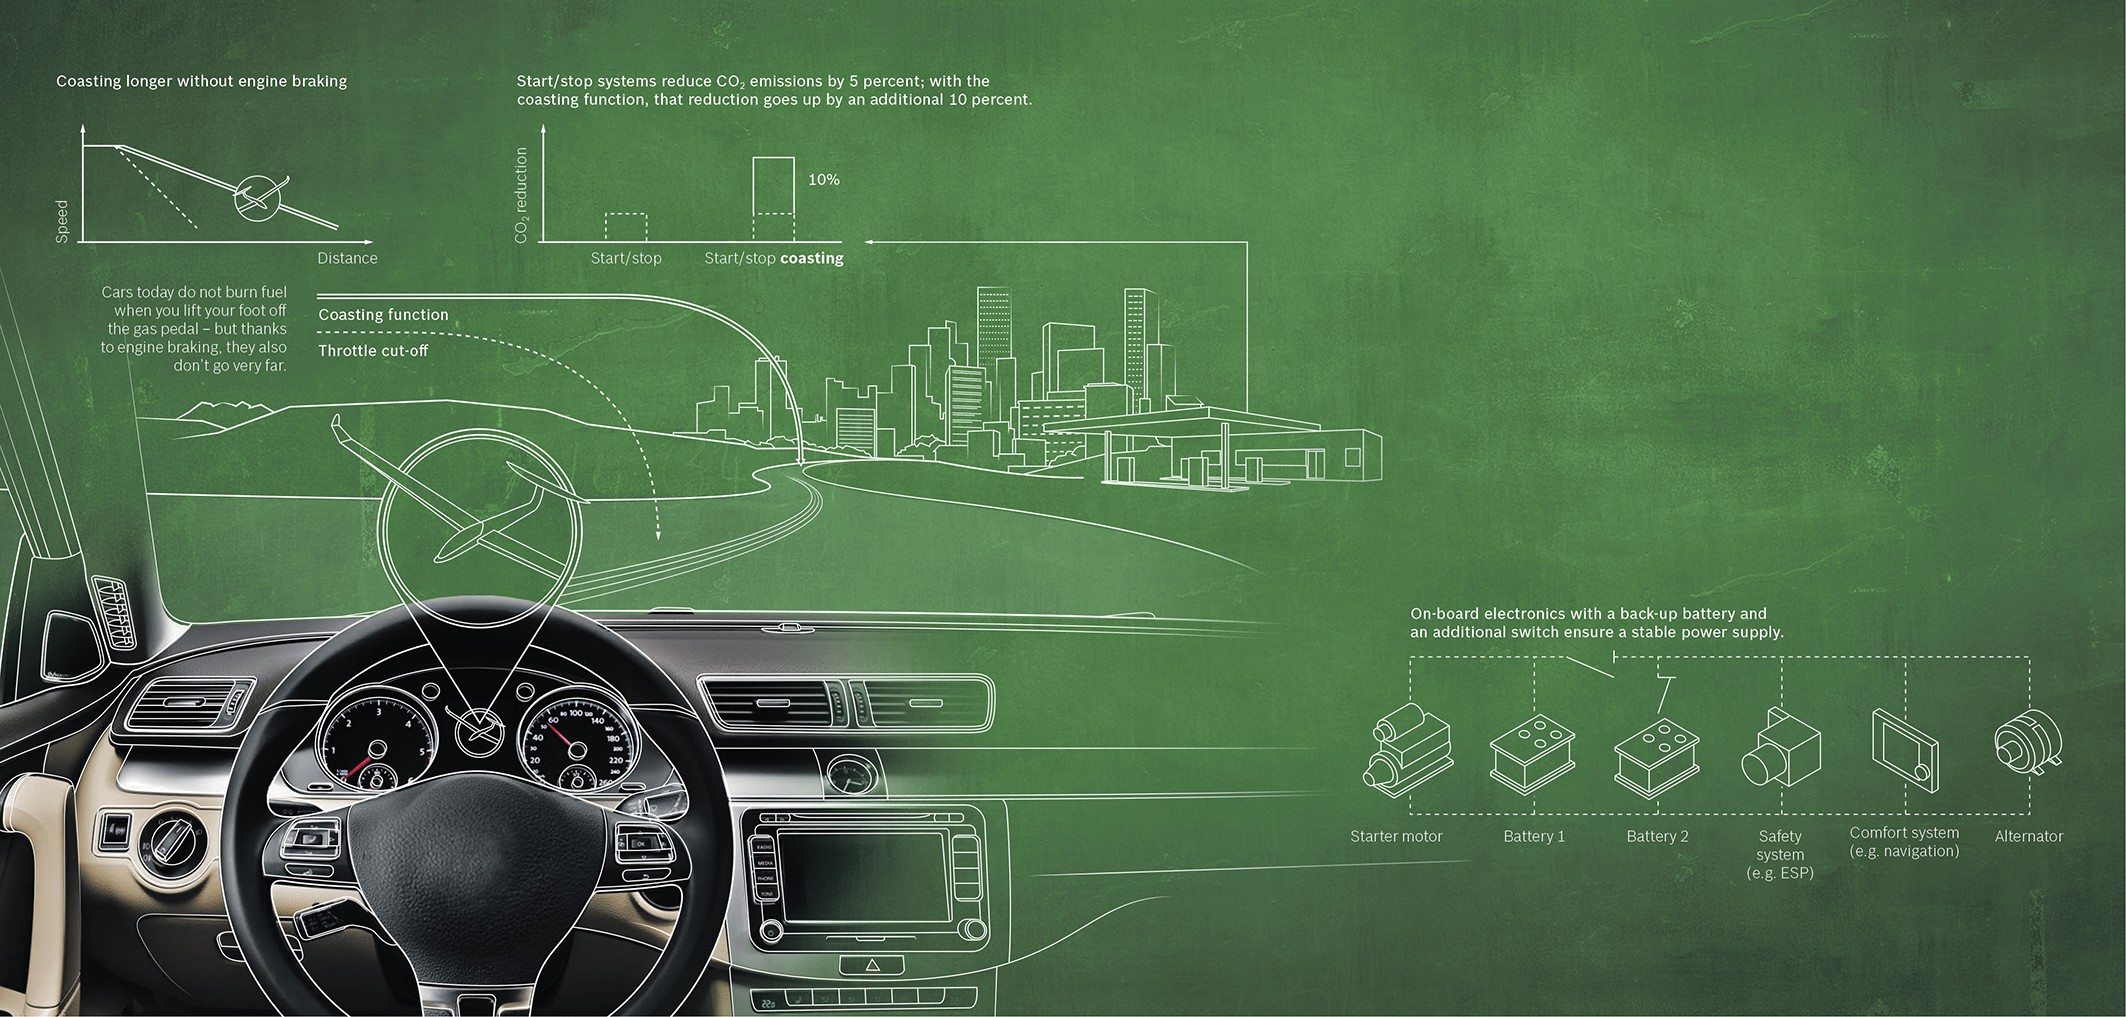 Stop and Start coasting function by Bosch